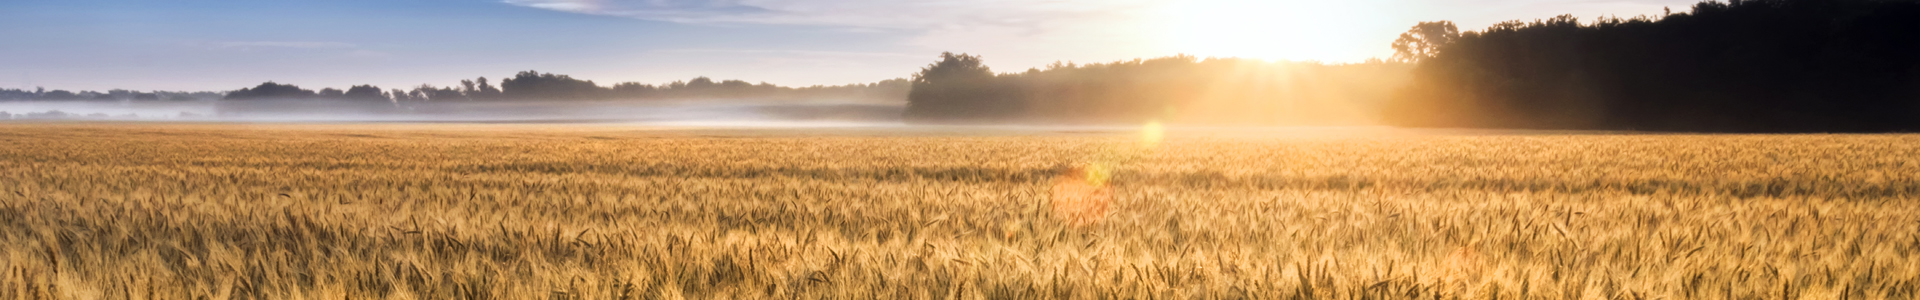 Ag Loans Banner, Wheat Field, Sunrise